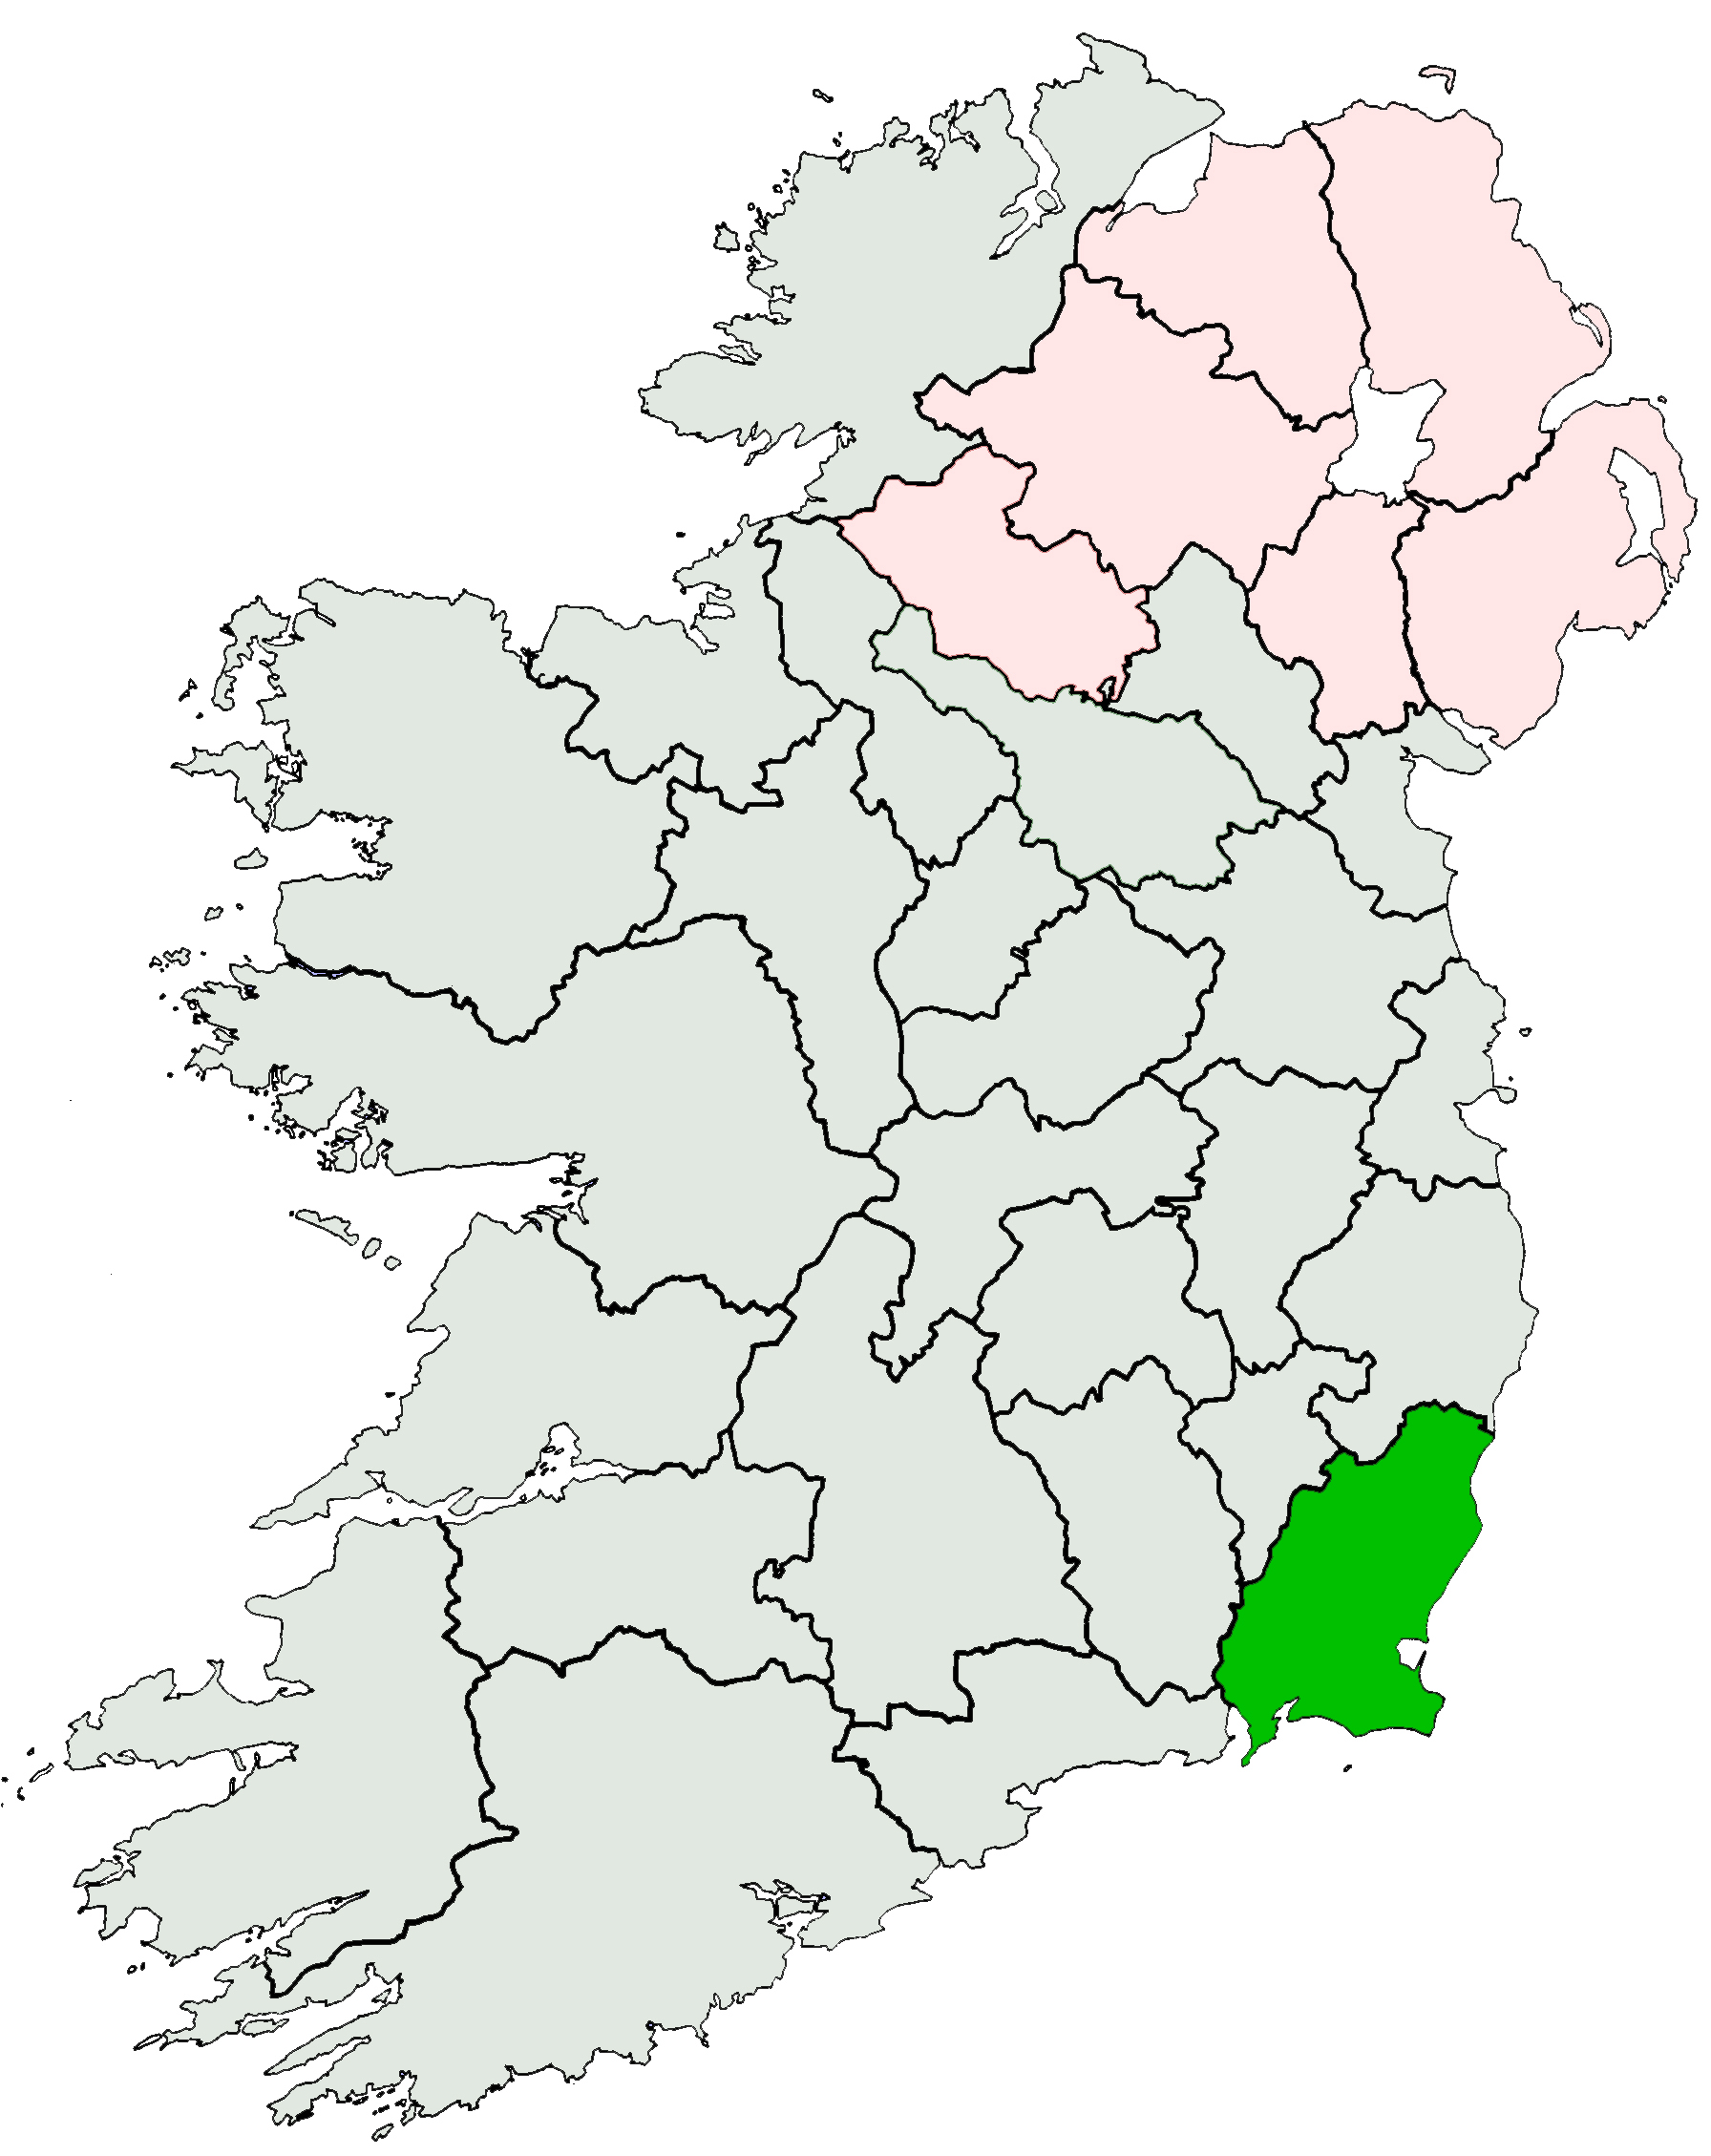 History of County Wexford - Wikipedia on ireland wexford, courtown wexford, hook lighthouse wexford, whites hotel wexford, co wexford,